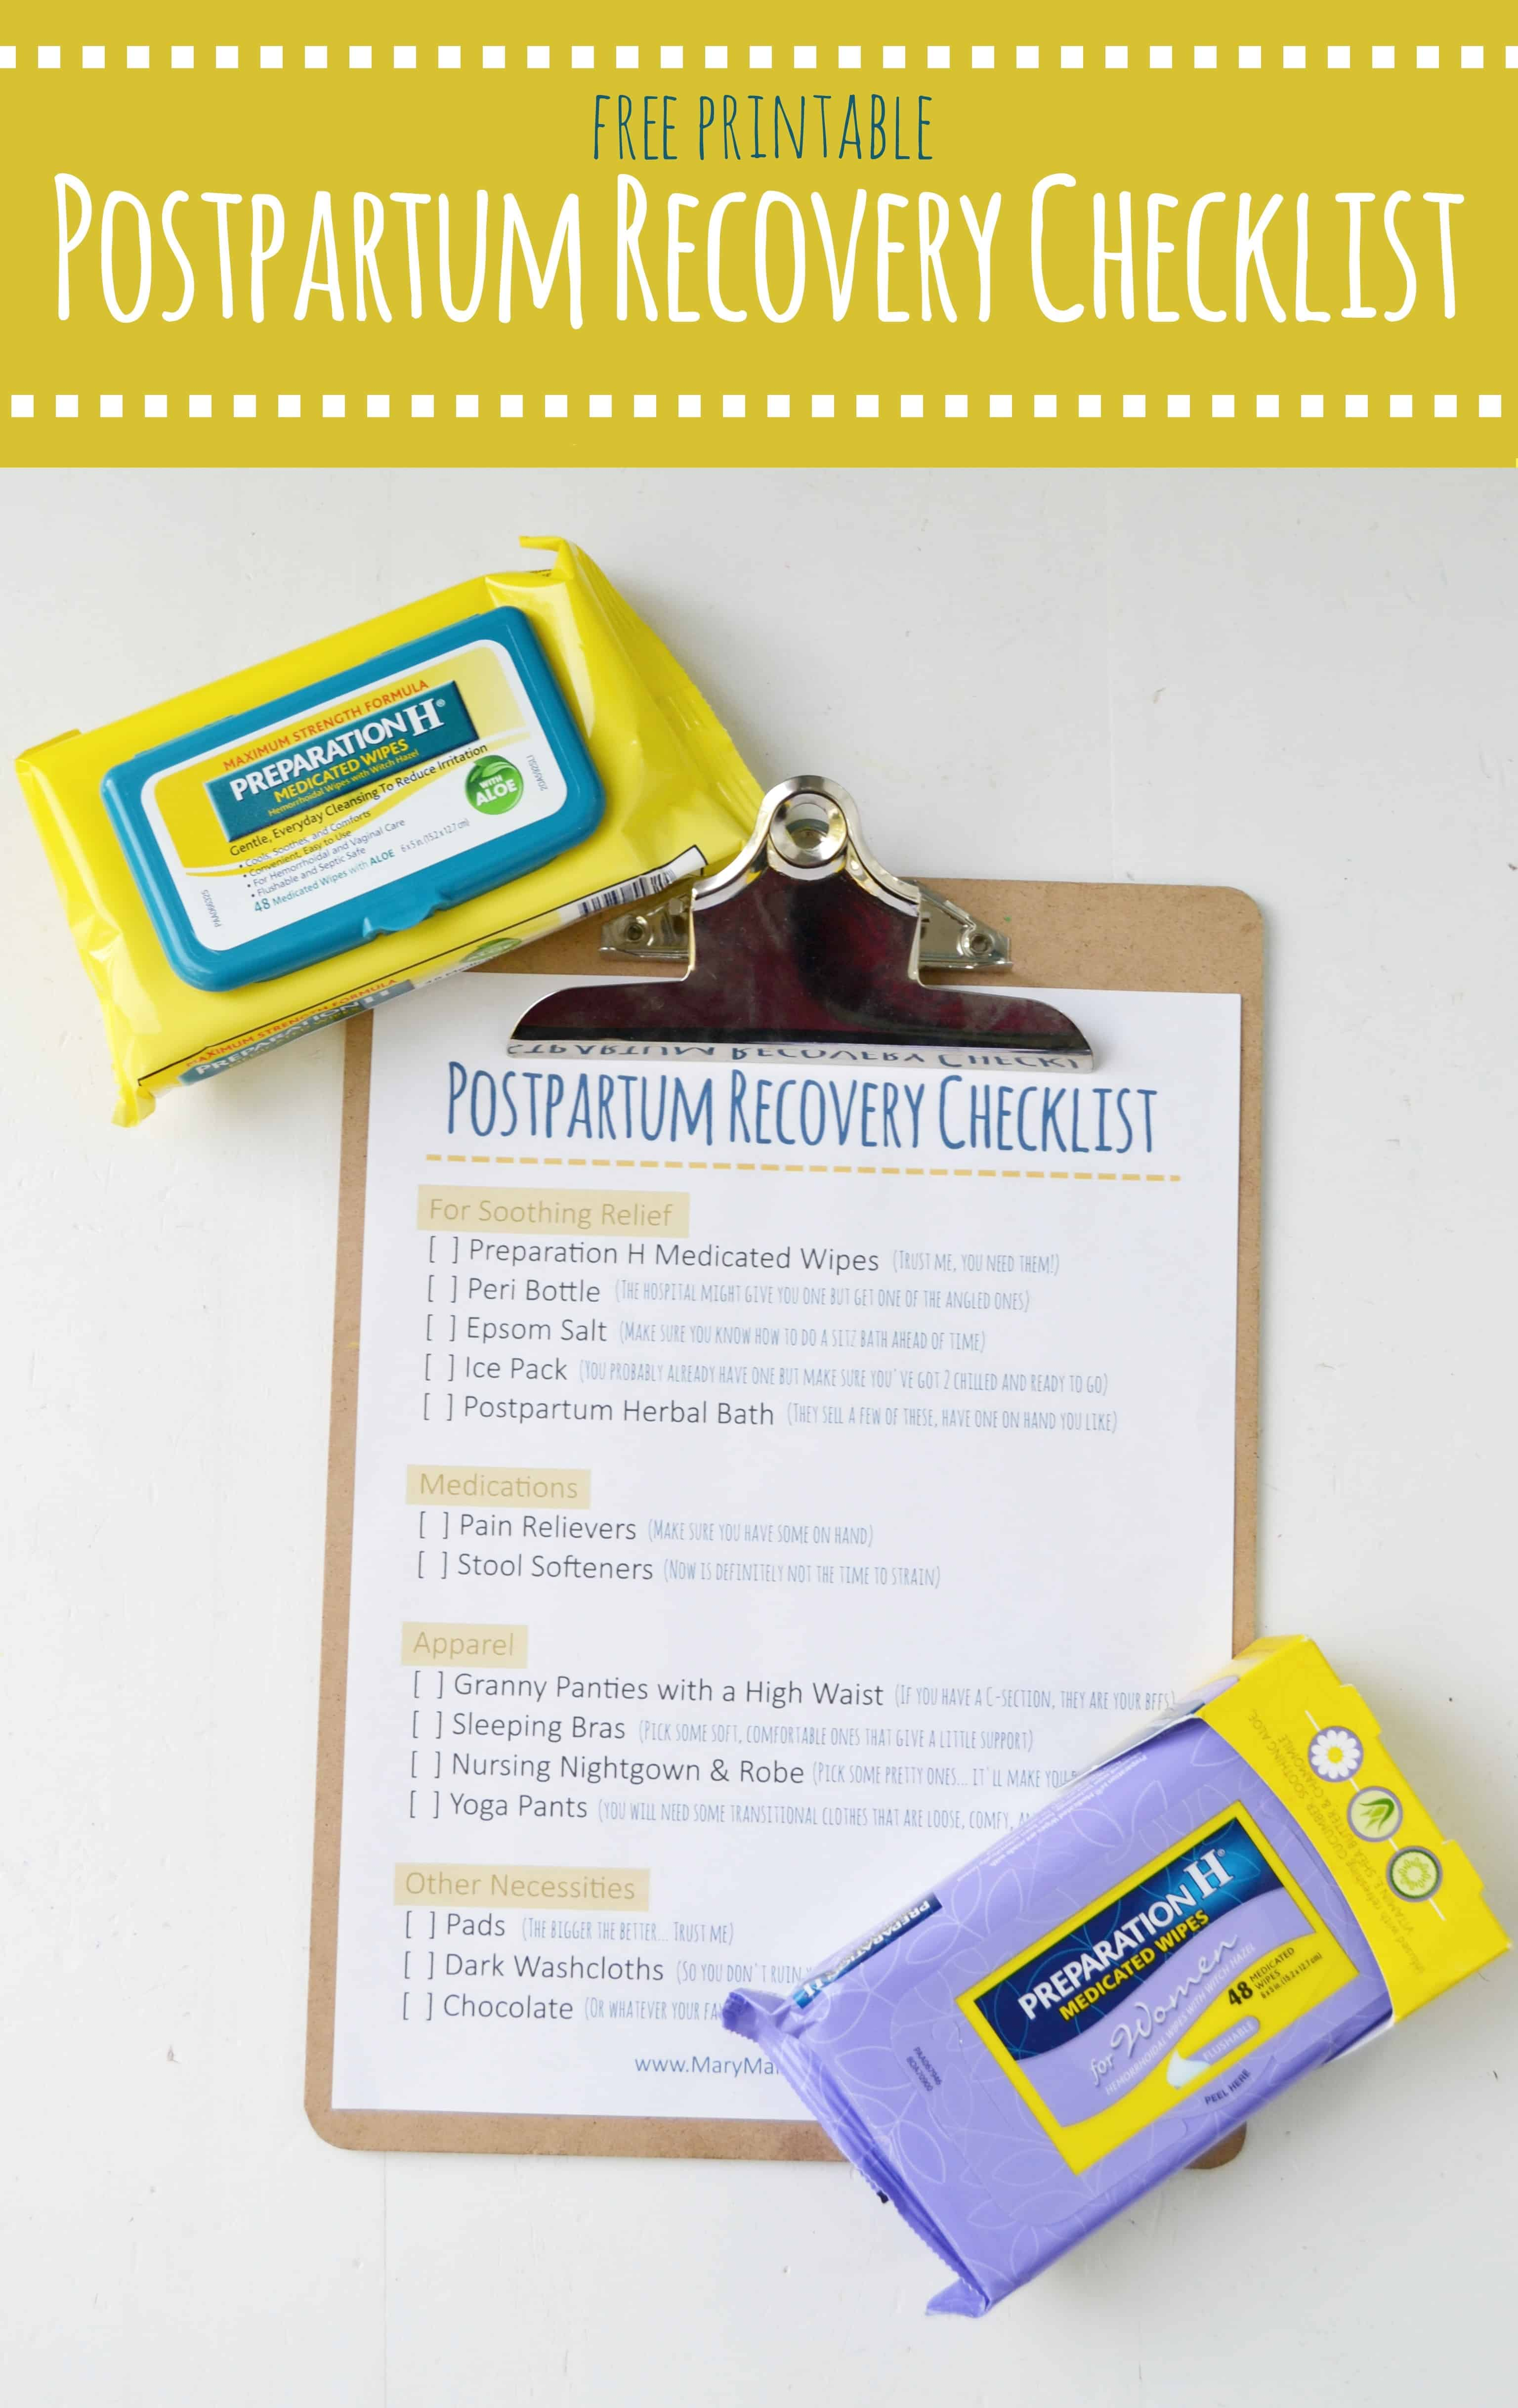 postpartum-recovery-checklist-printable-checklist-to-help-you-recovery-after-giving-birth-2